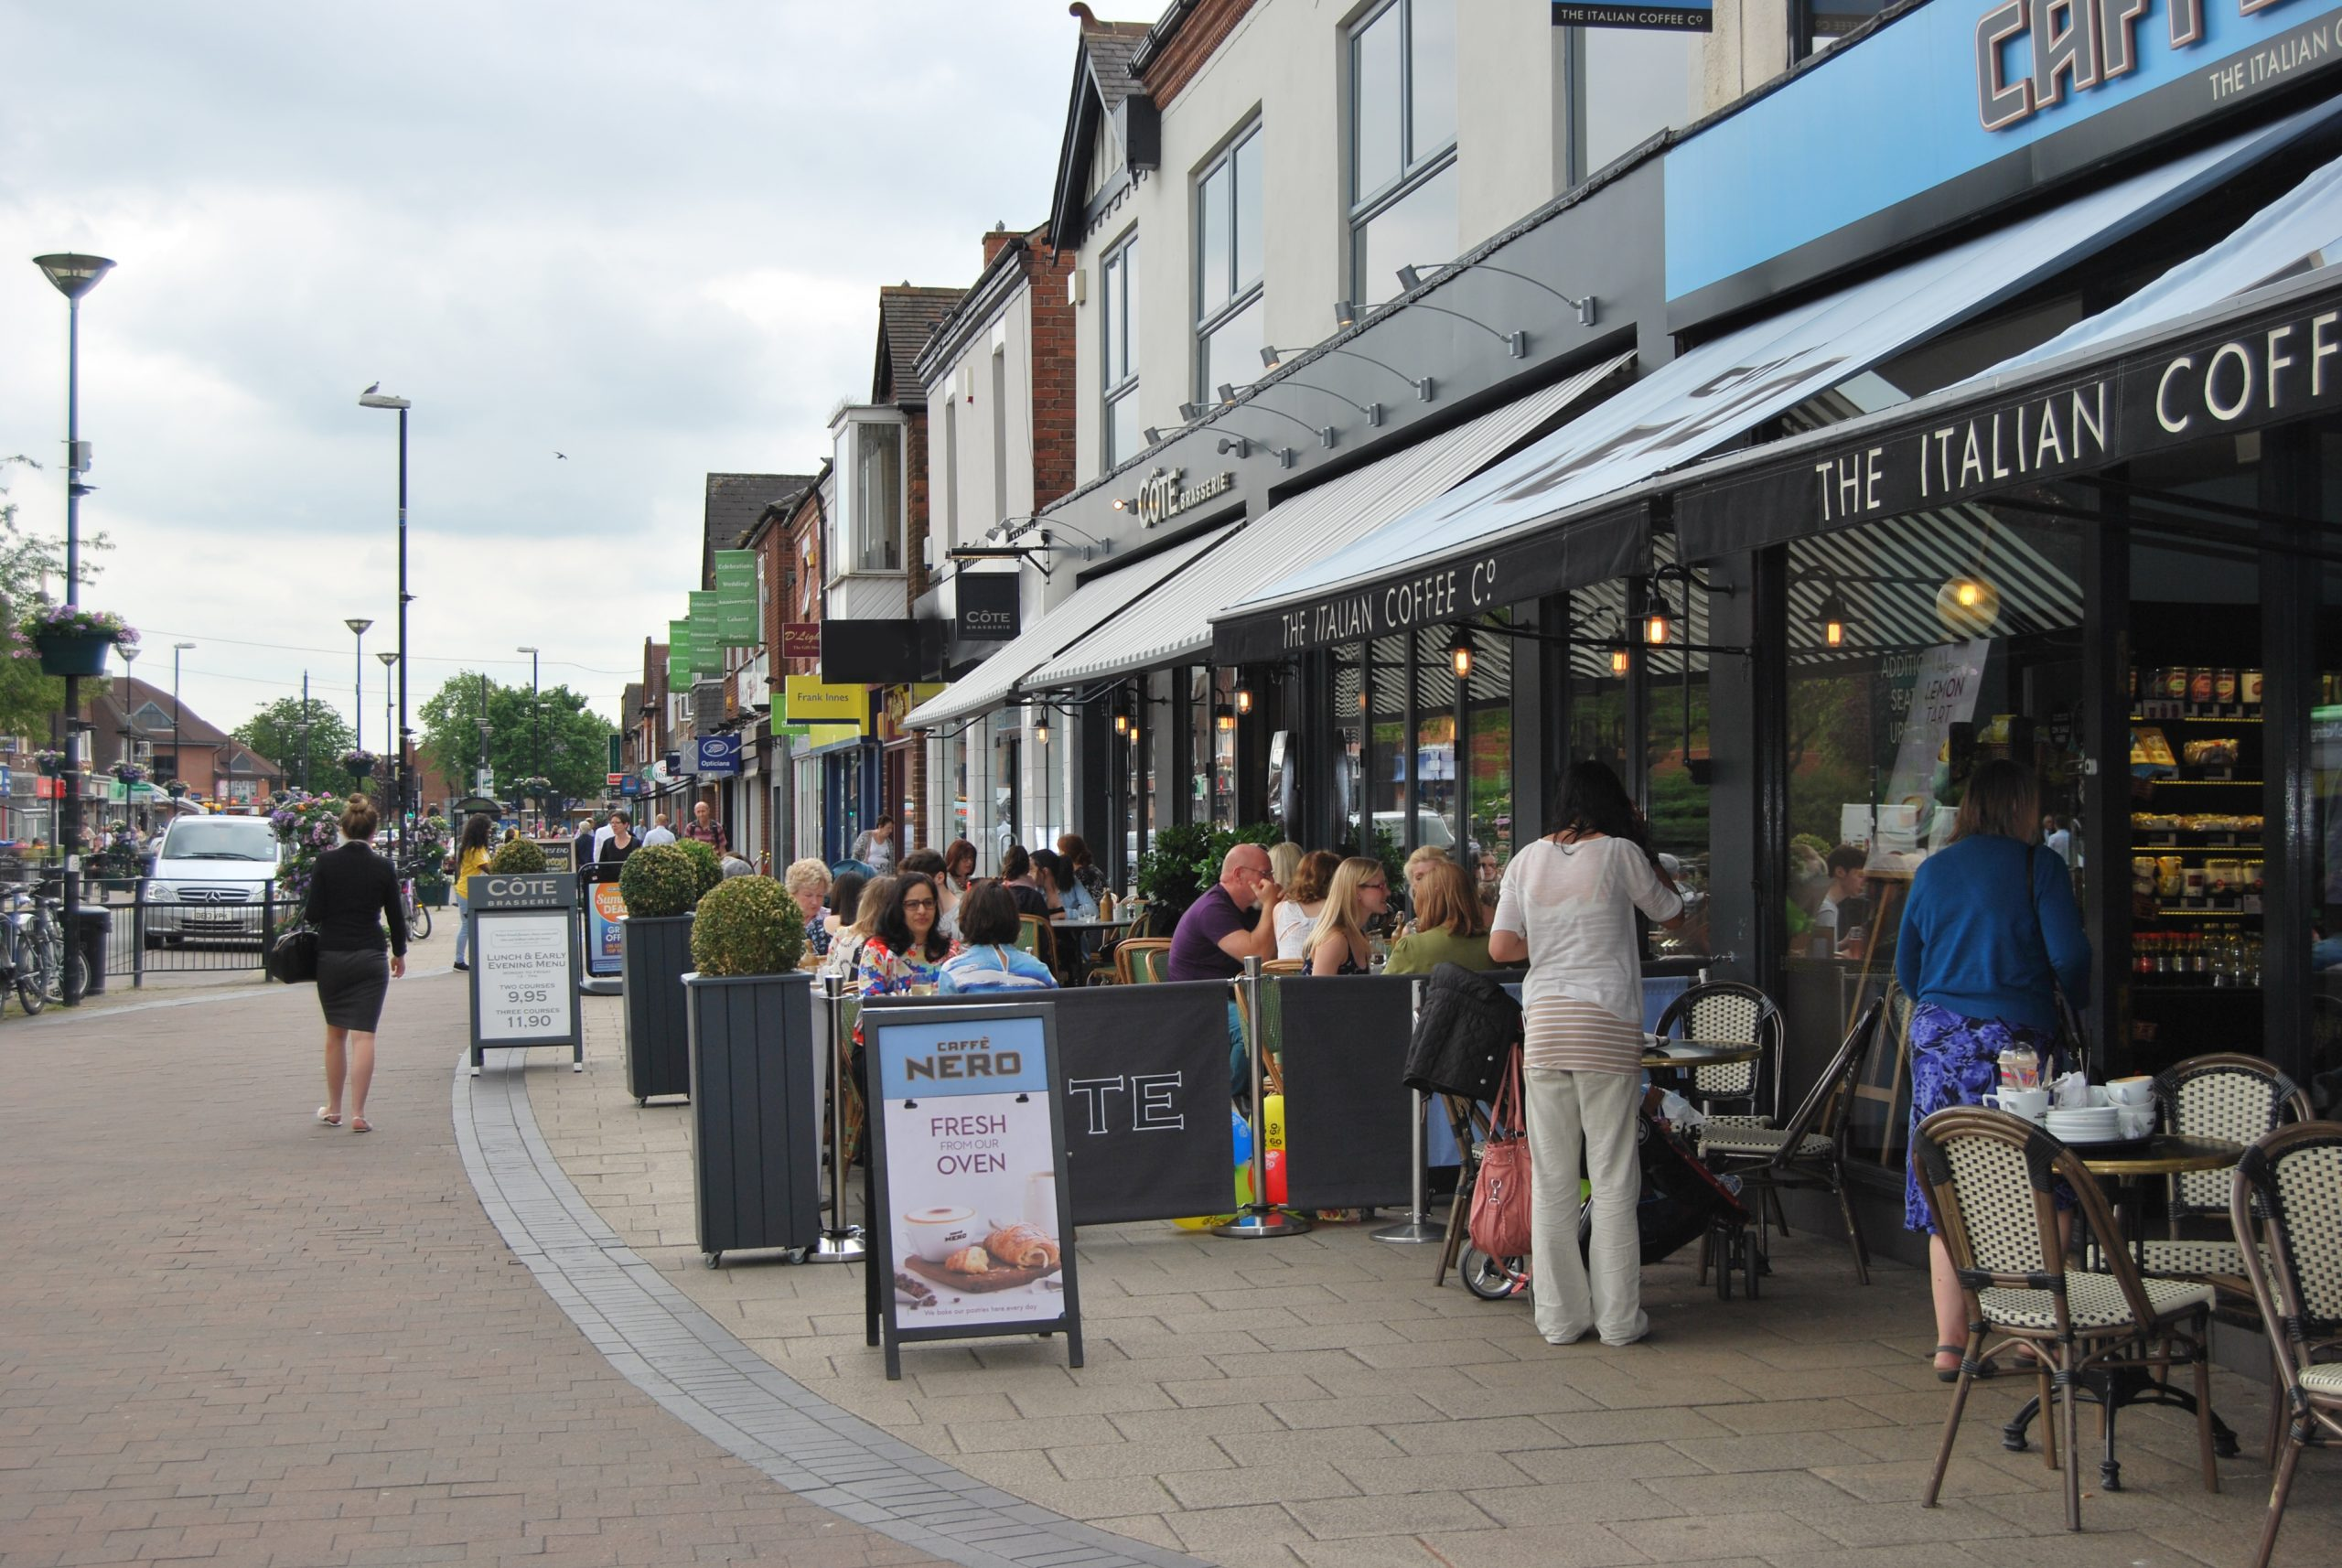 Rushcliffe Borough Councils Cabinet is disappointed at the lack of support for Central Avenue businesses in West Bridgford scaled